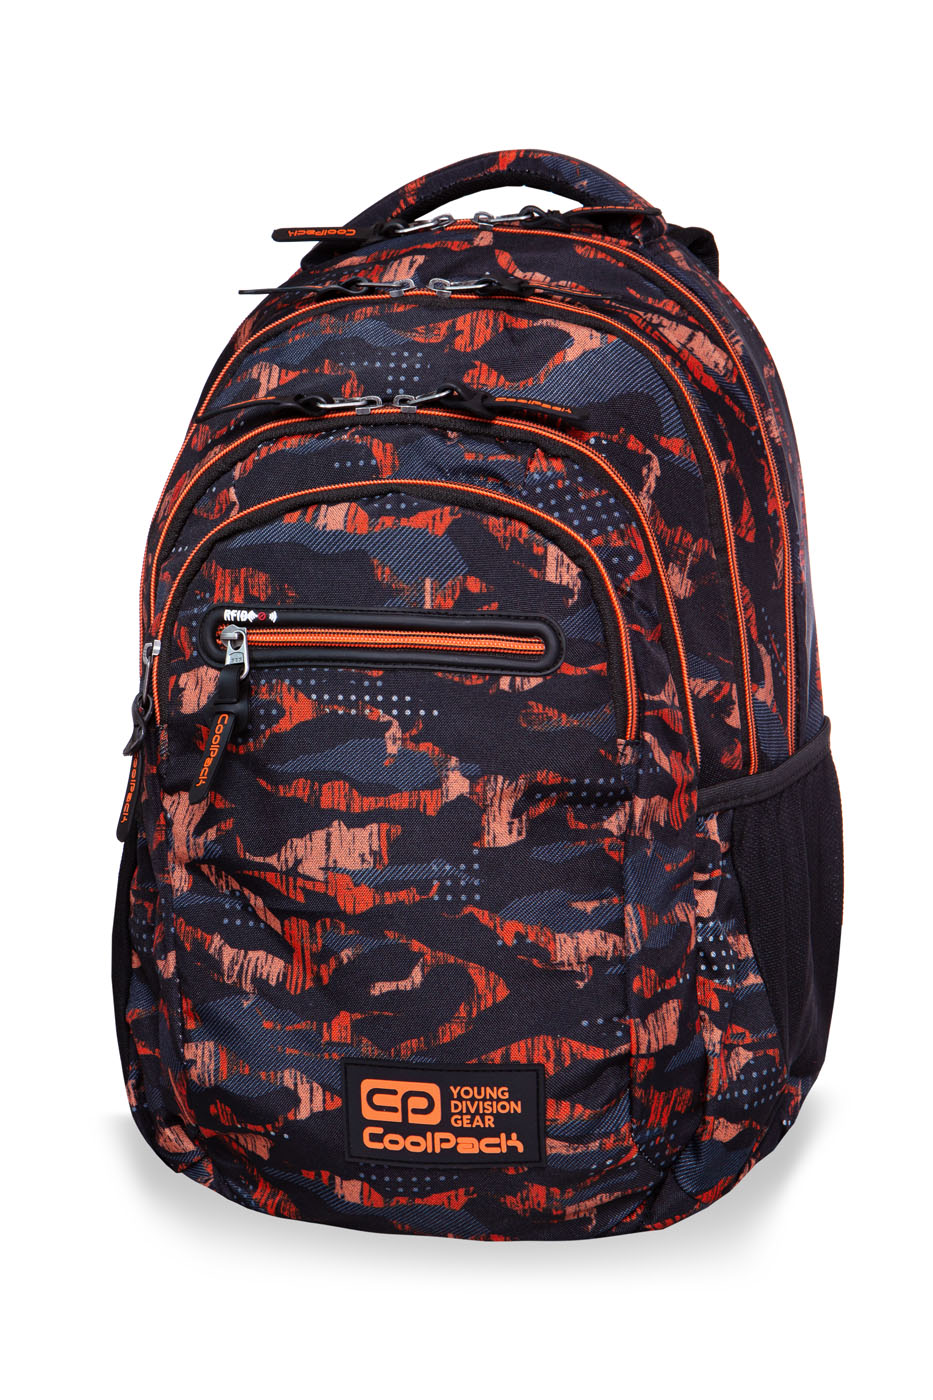 Coolpack - college tech - youth backpack - orango